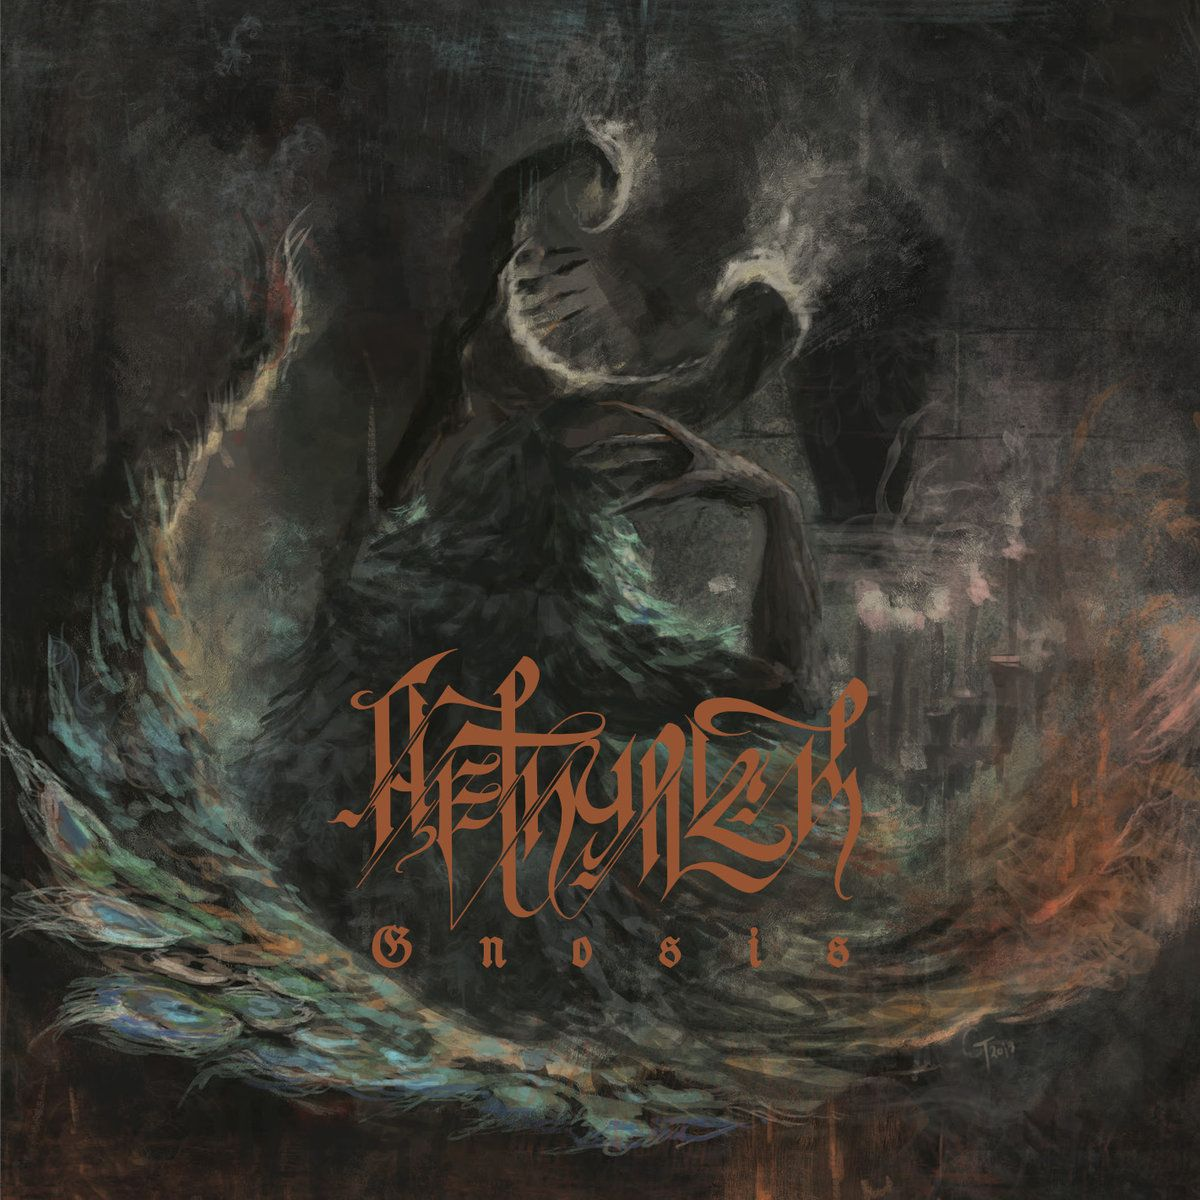 Review for Aethyrick - Gnosis